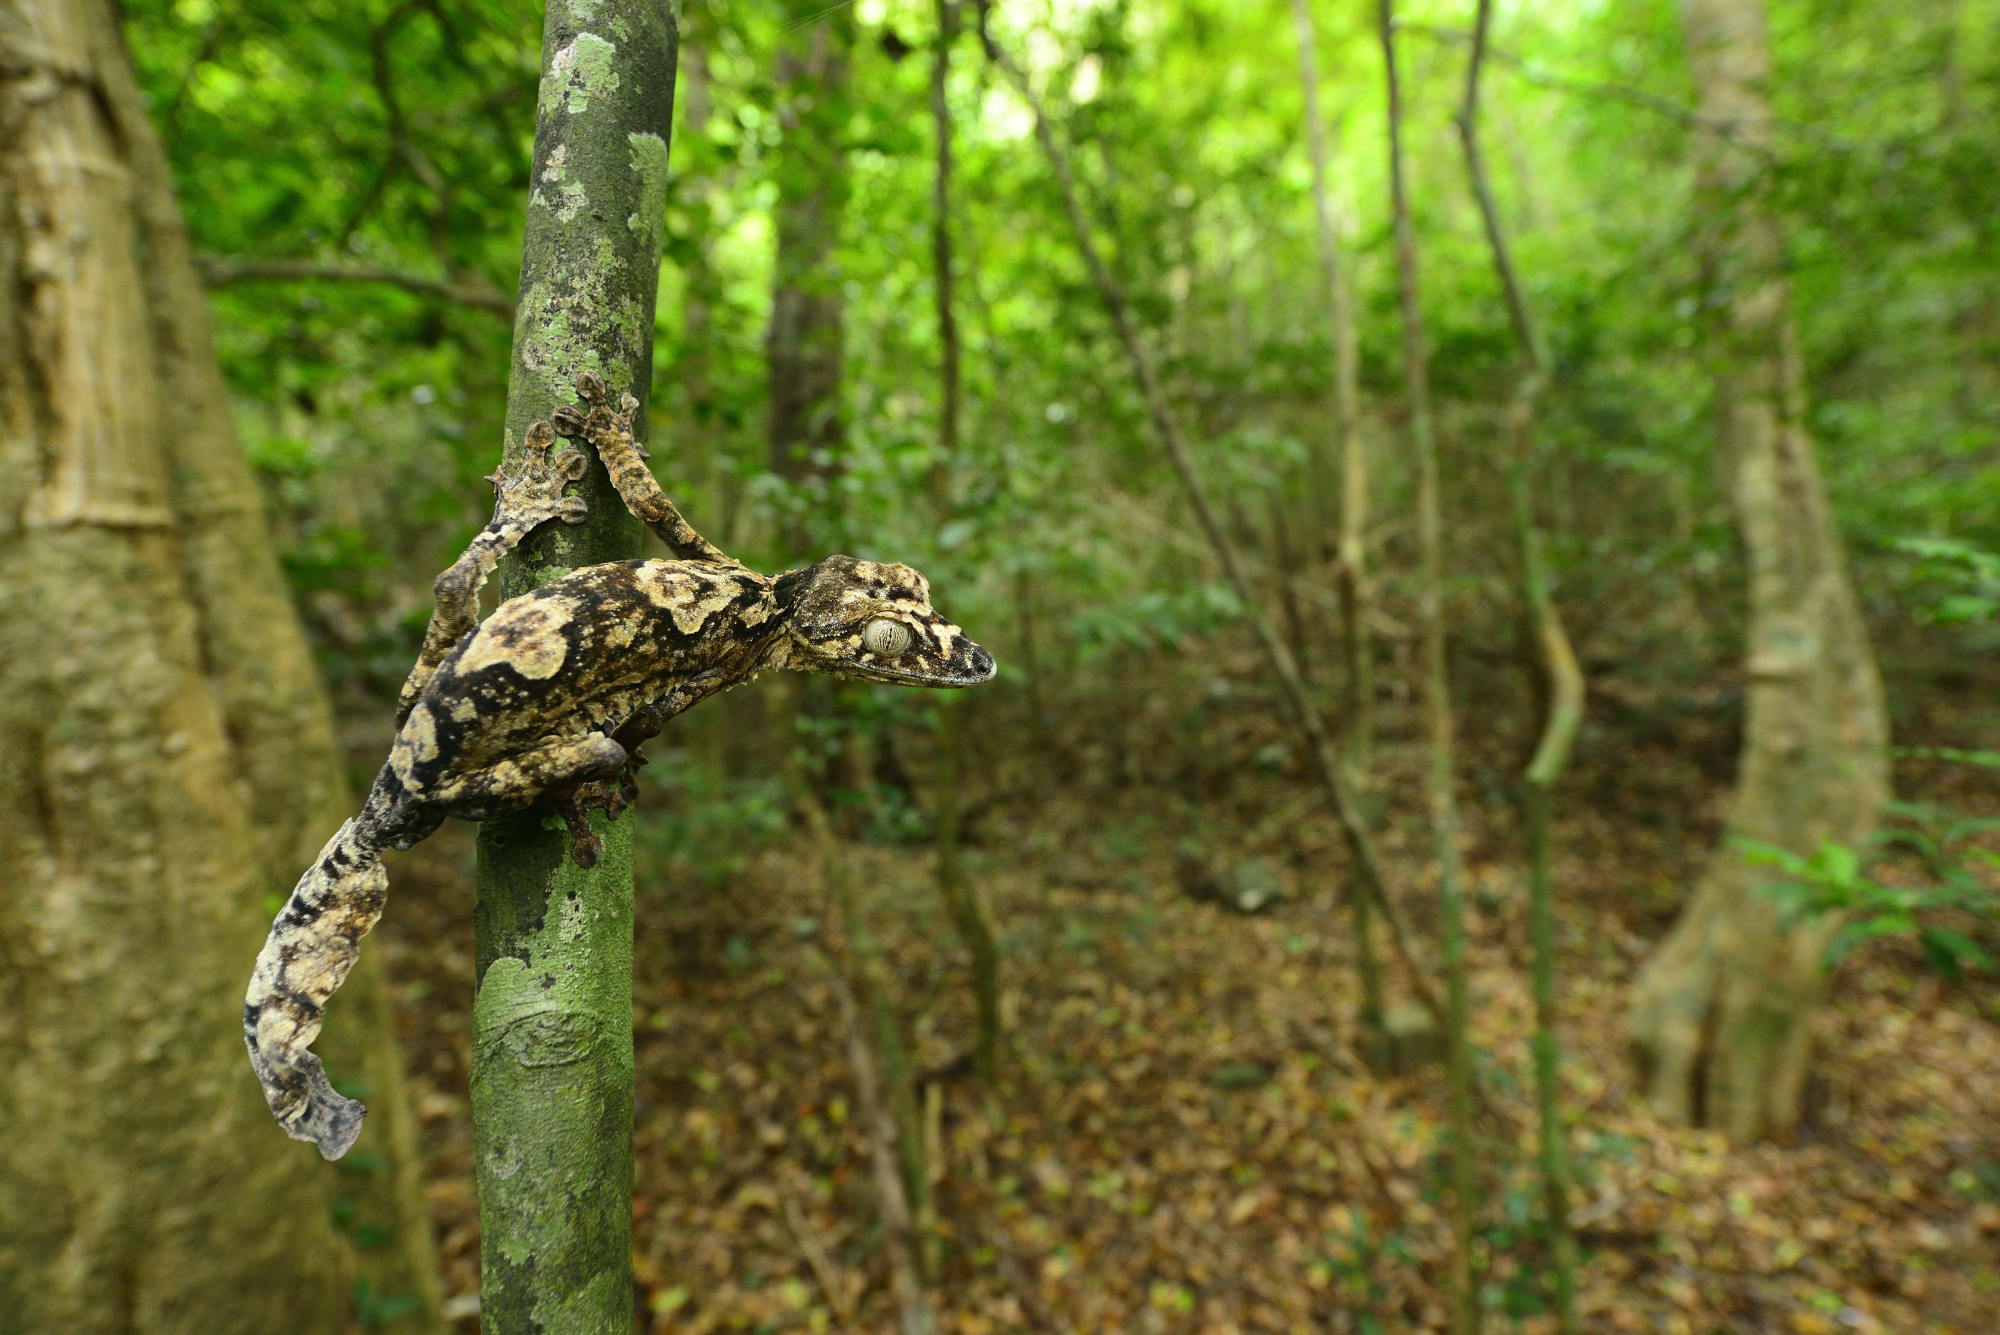 Uroplatus giganteus on Montagne d'Ambre. Photo © Mark D. Scherz